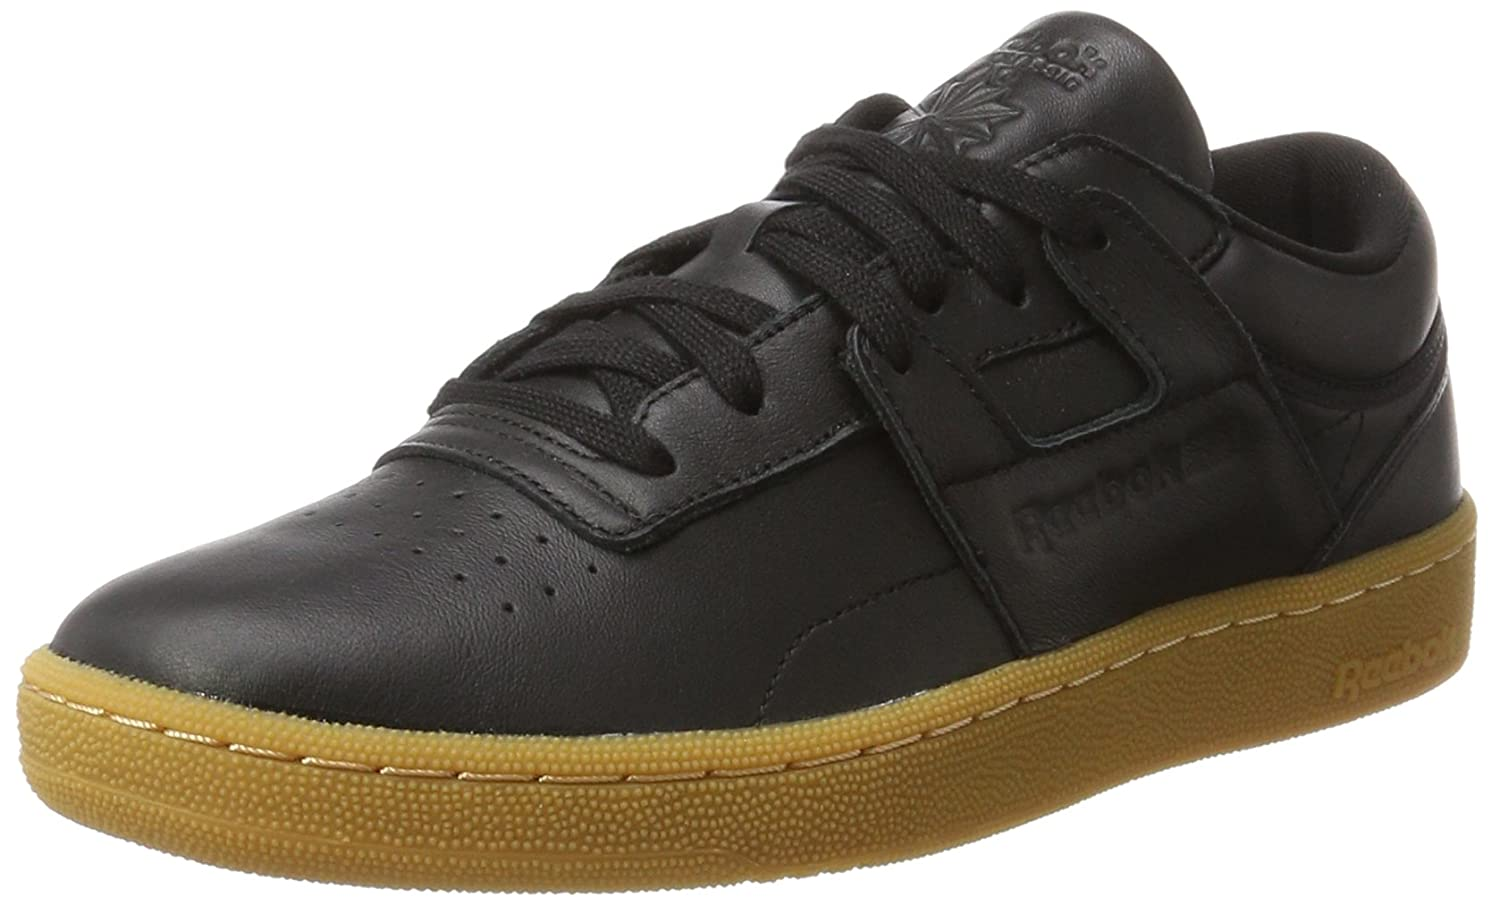 79ffcac9e033 Amazon.com  Reebok Club Workout Mens Sneakers Black  Clothing